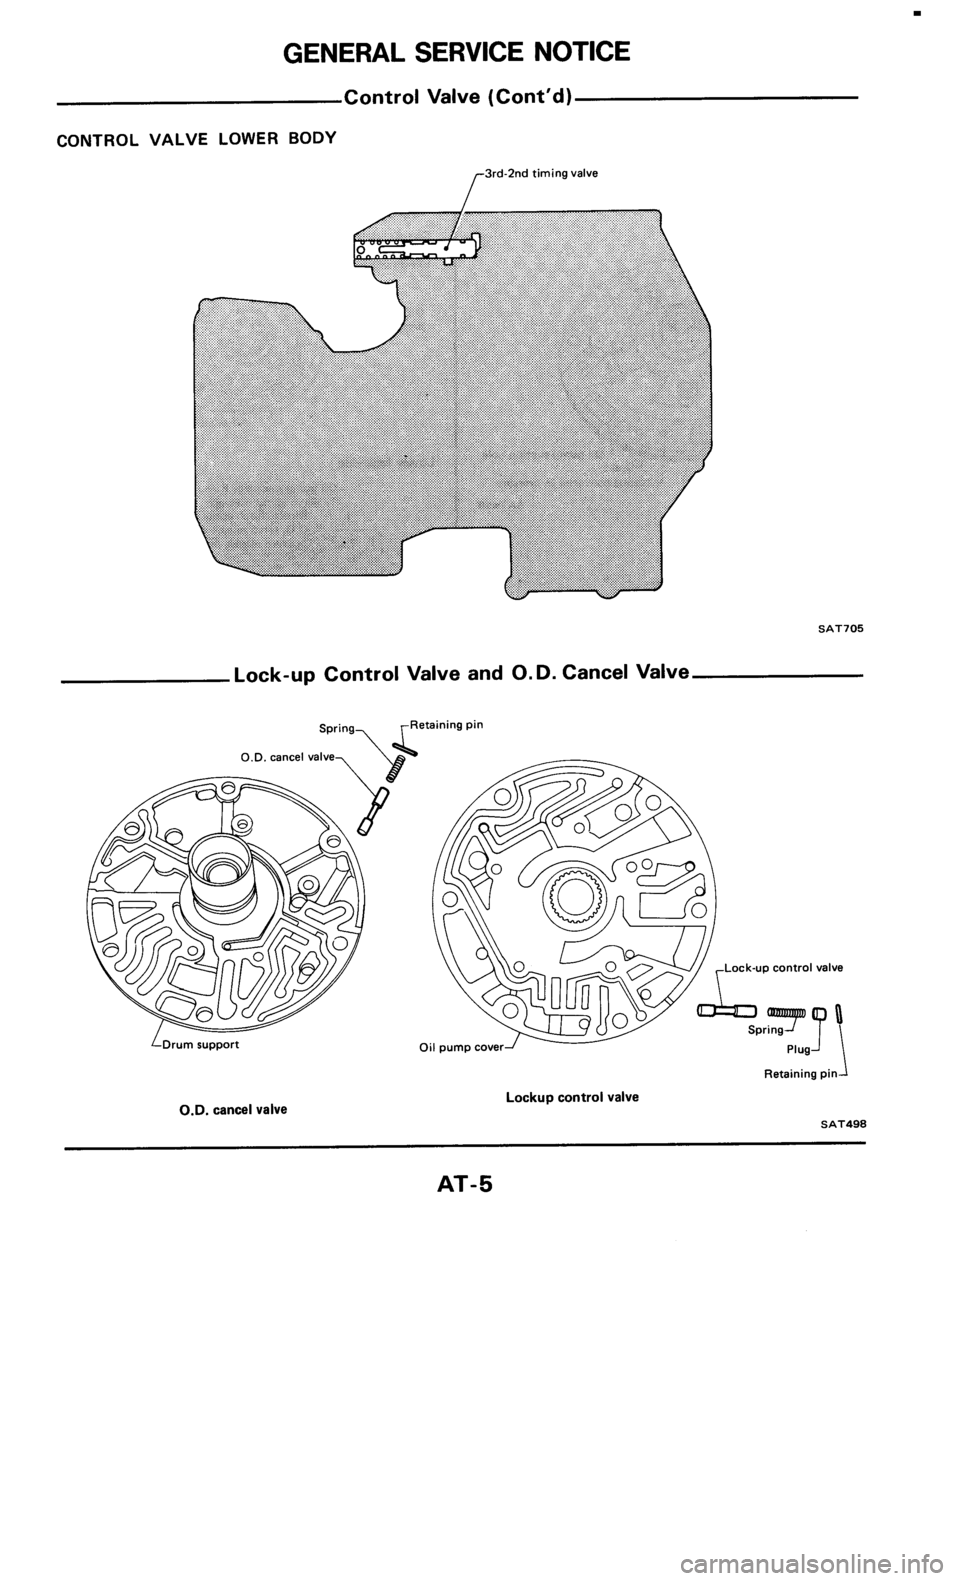 NISSAN 300ZX 1985 Z31 Automatic Transmission Workshop Manual, Page 5